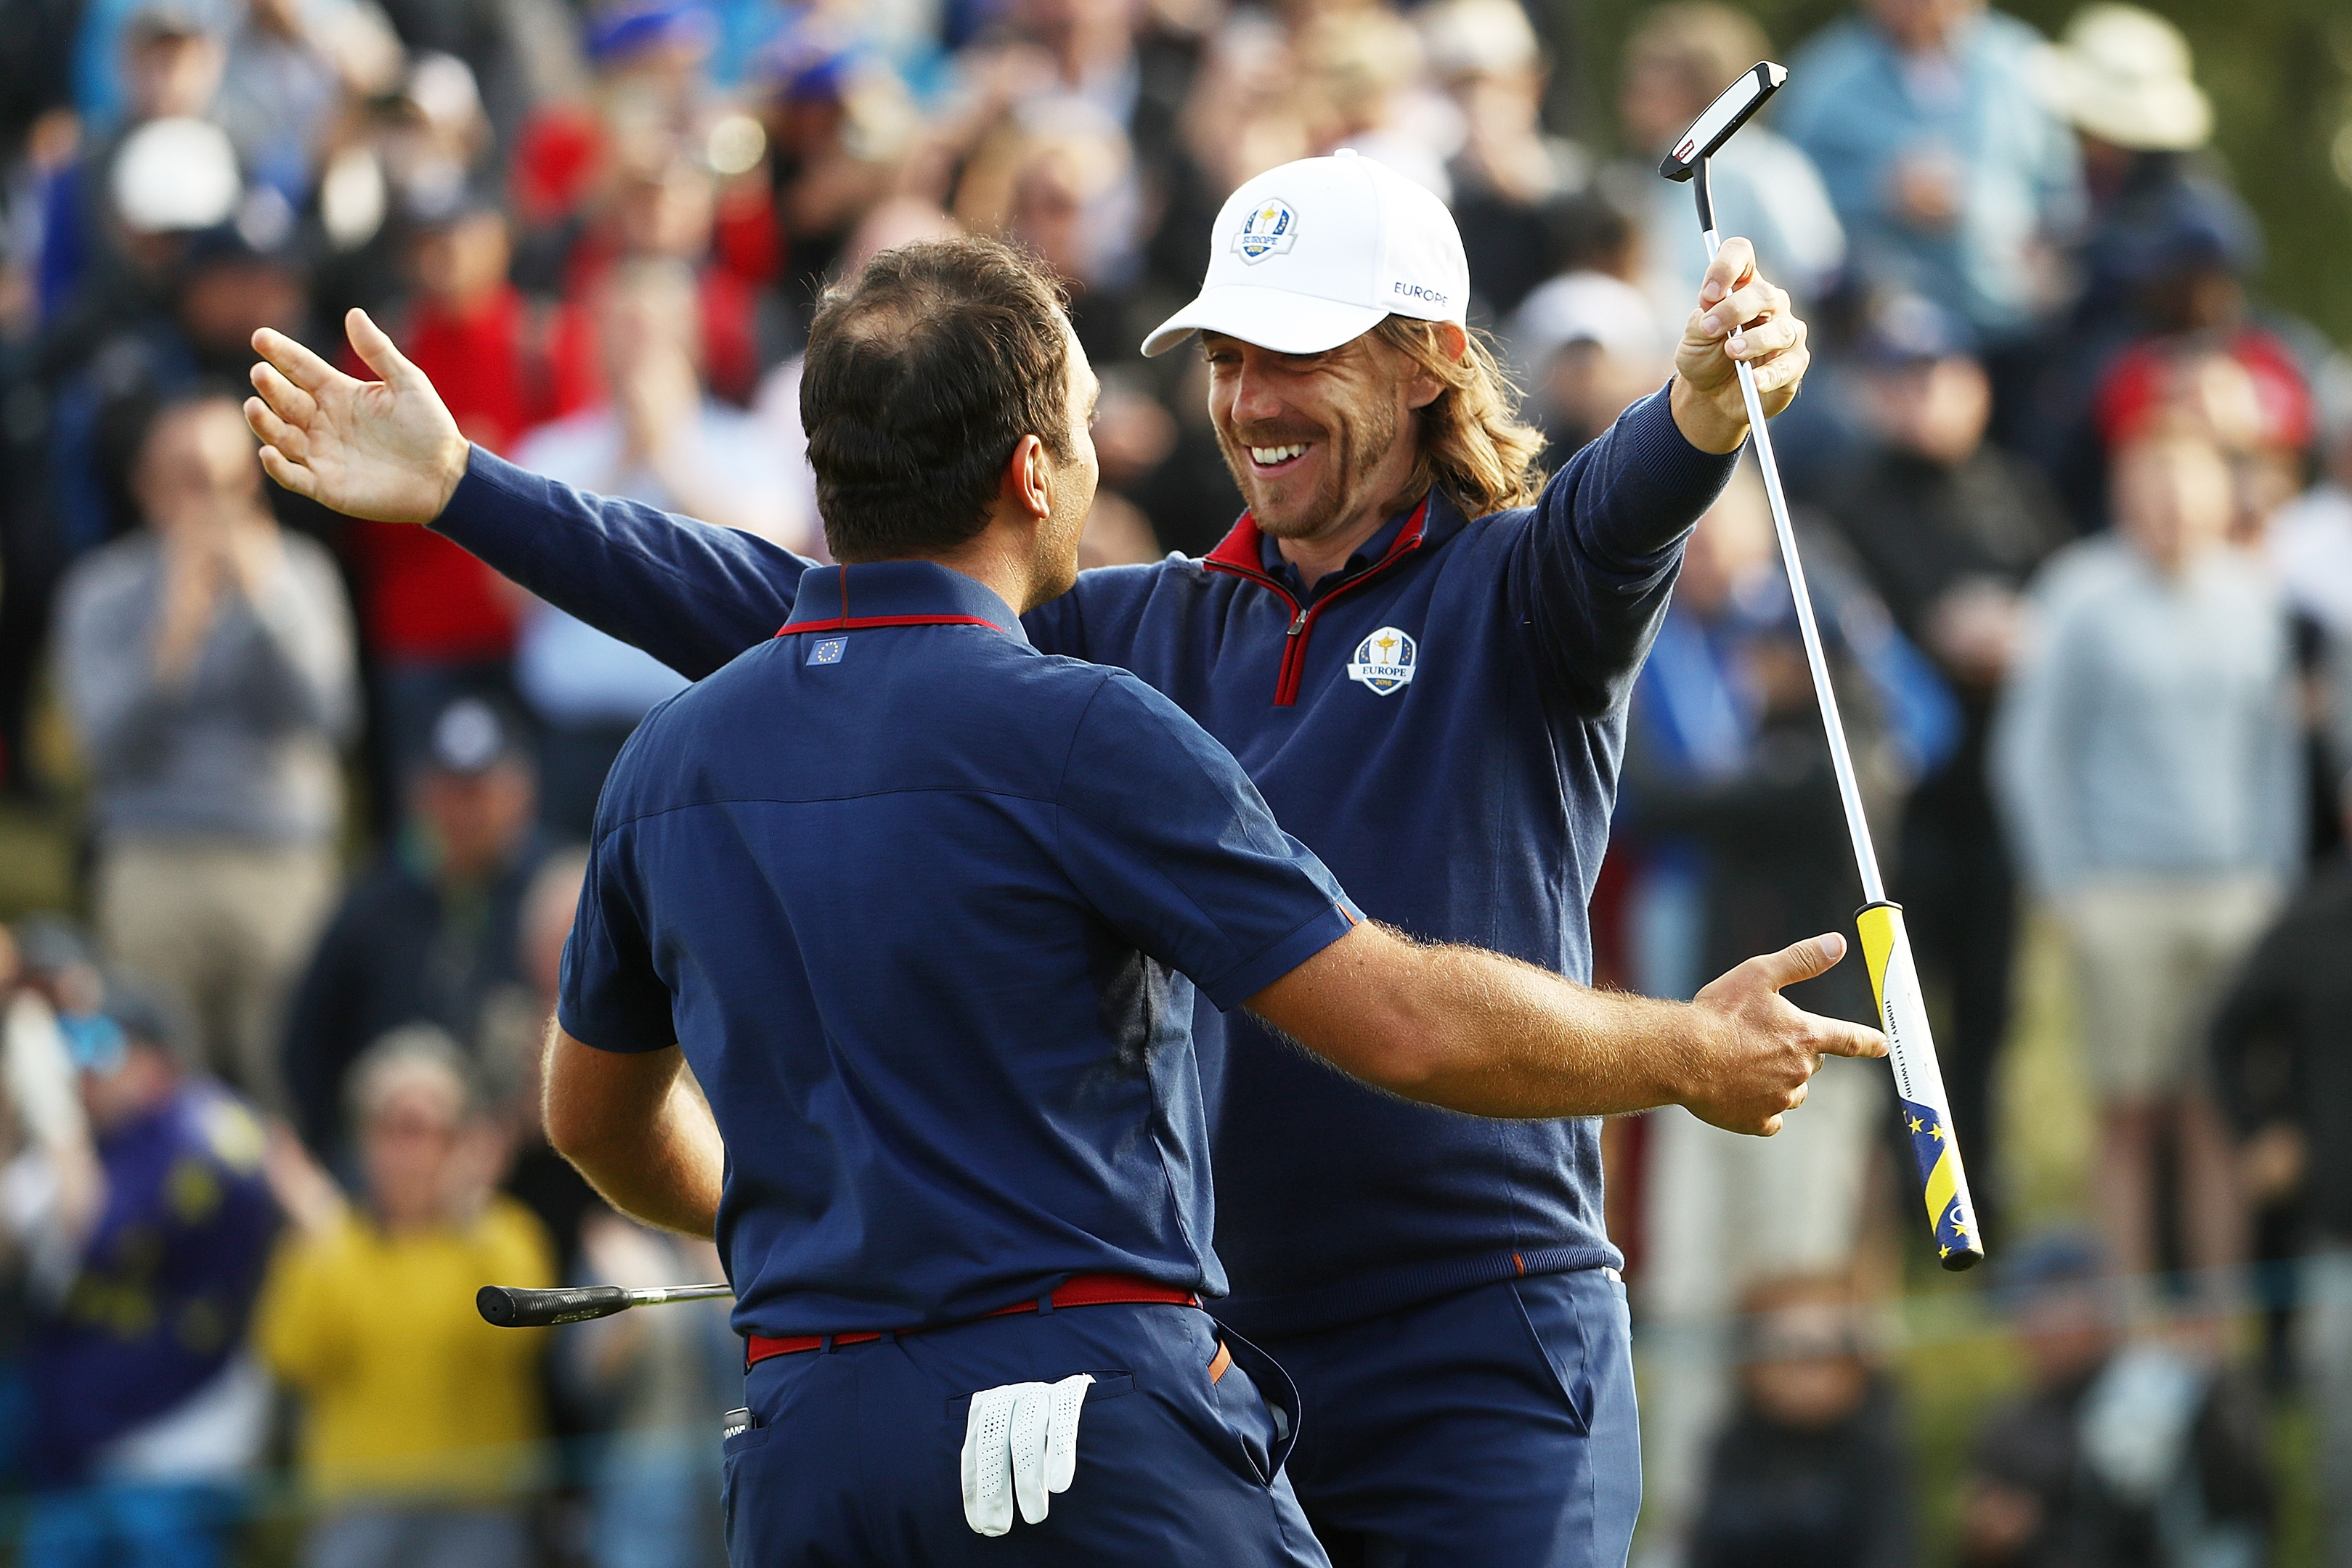 Francesco Molinari and Tommy Fleetwood celebrate after completing the 4-0 foursomes whitewash for Europe in the Ryder Cup in Paris.